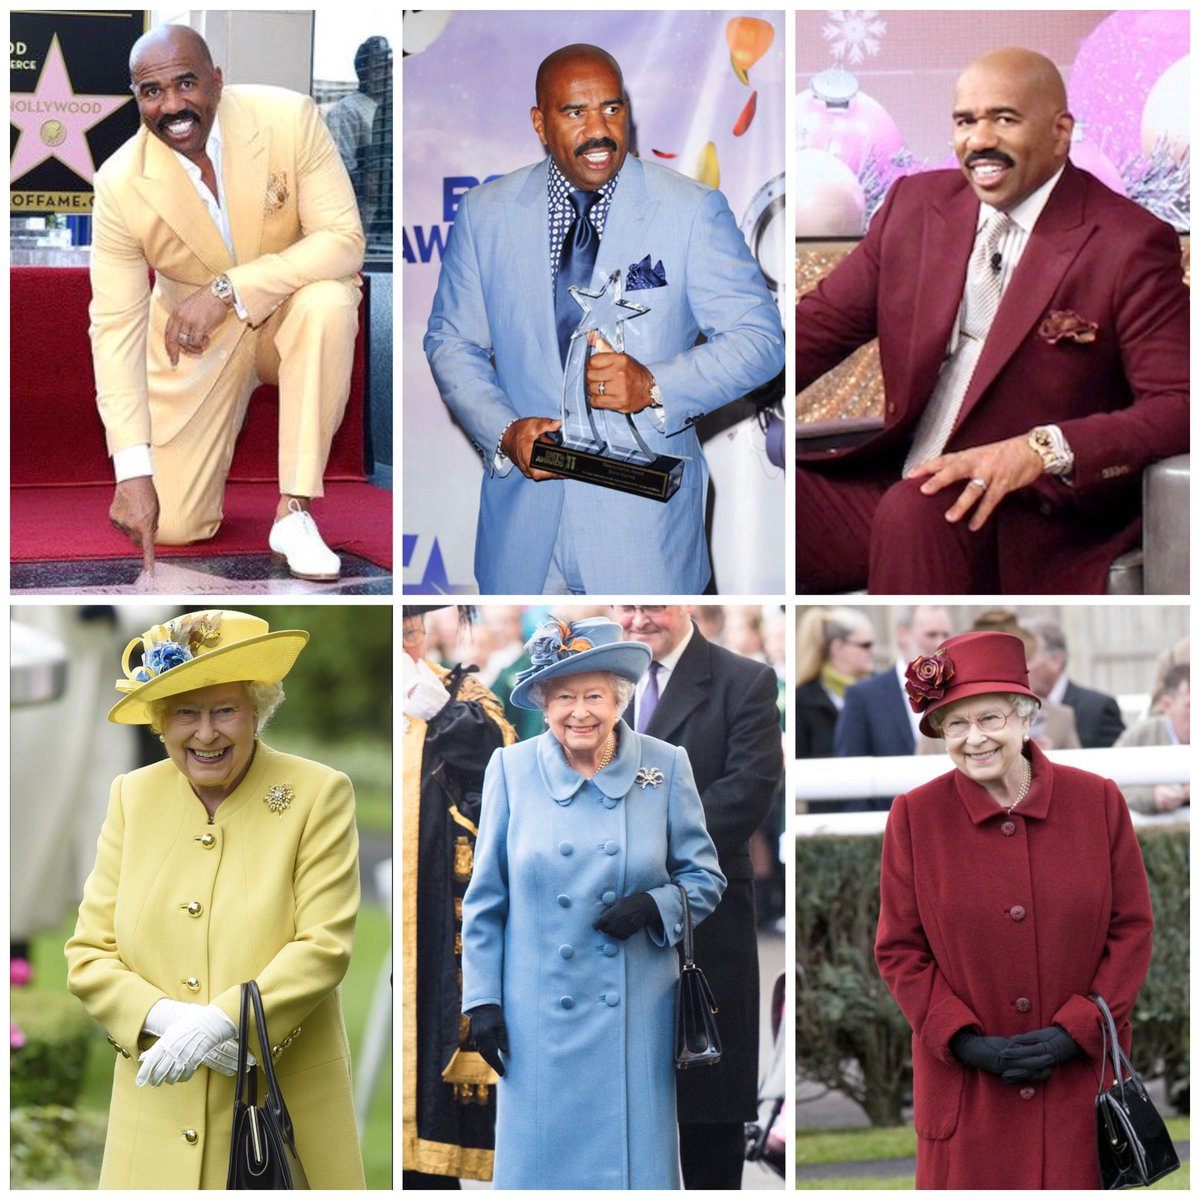 Queen Elizabeth dresses like she's about to go to prom with Steve Harvey